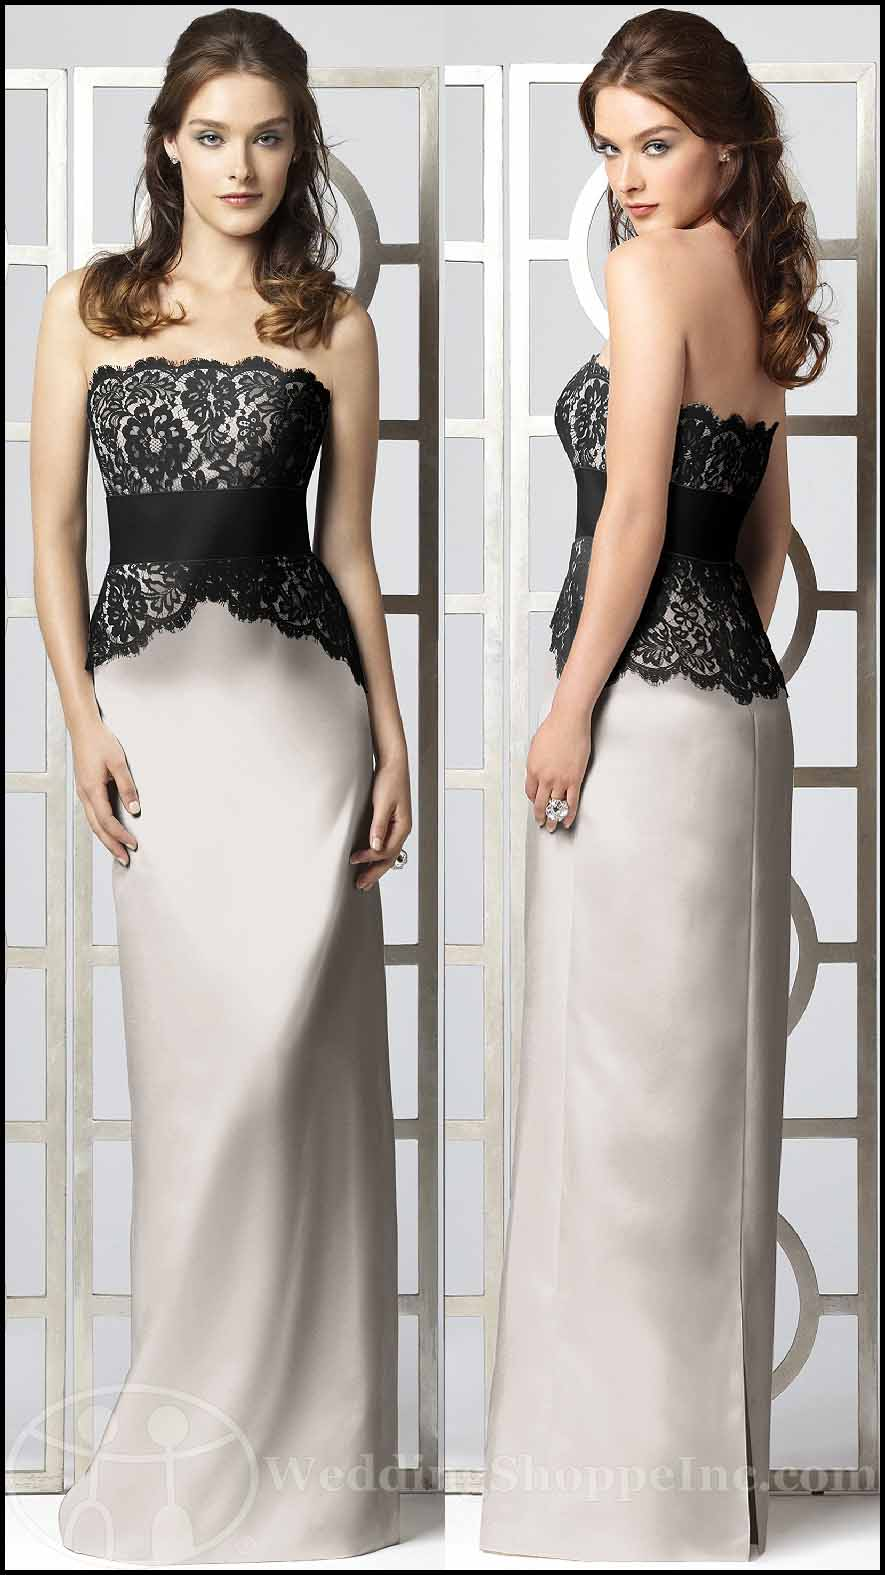 black and white lace bridesmaid dresses